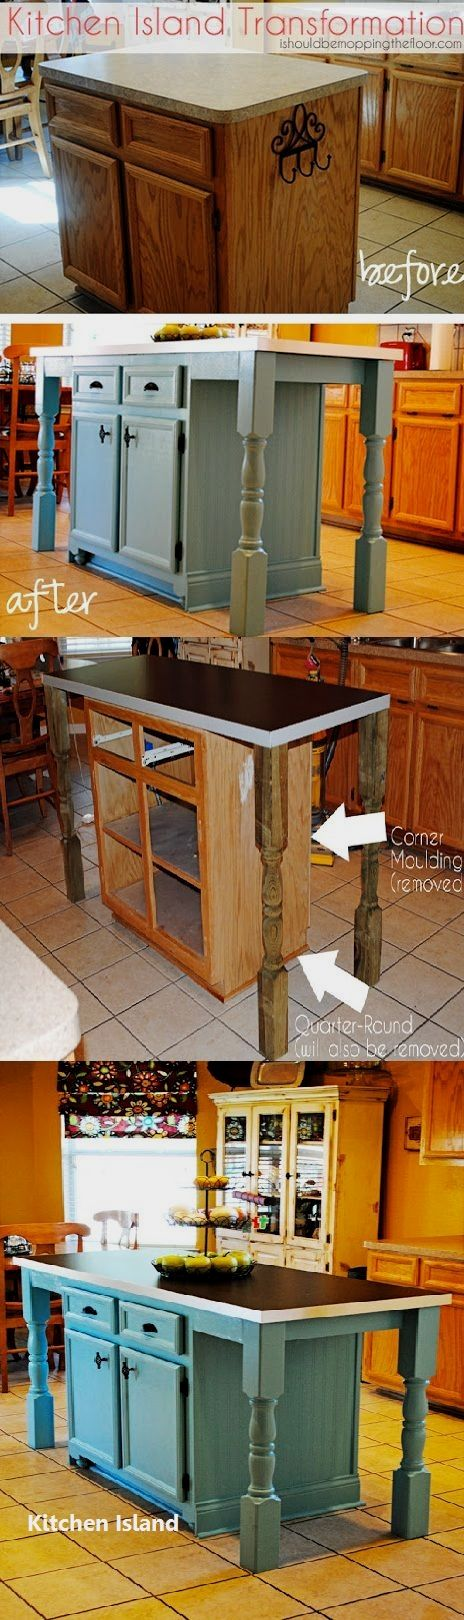 Diy Guide For Making A Kitchen Island 1 Diy Kitchen Island Diy Kitchen Home Diy